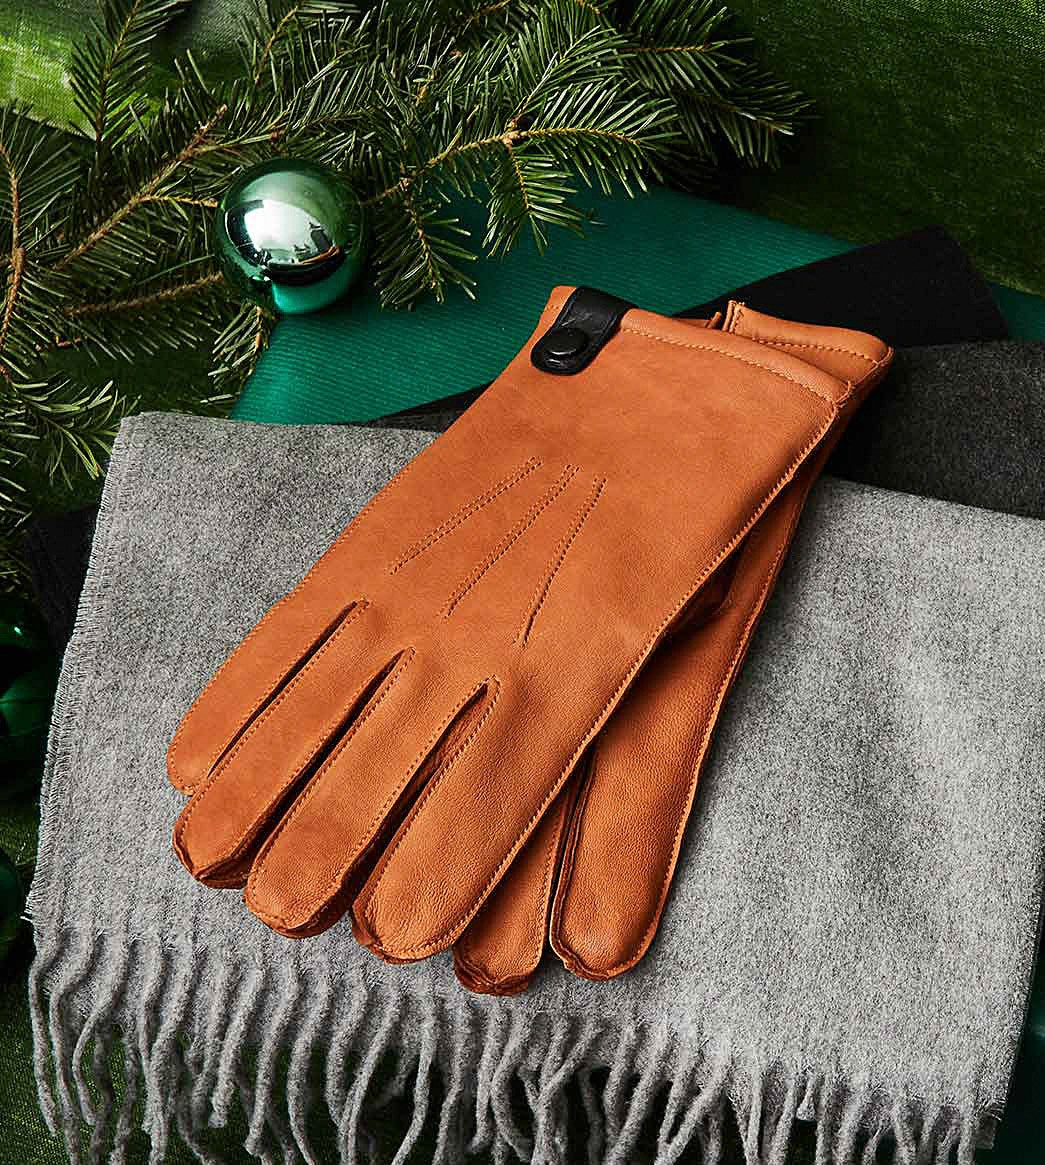 The gloves on top of a scarf